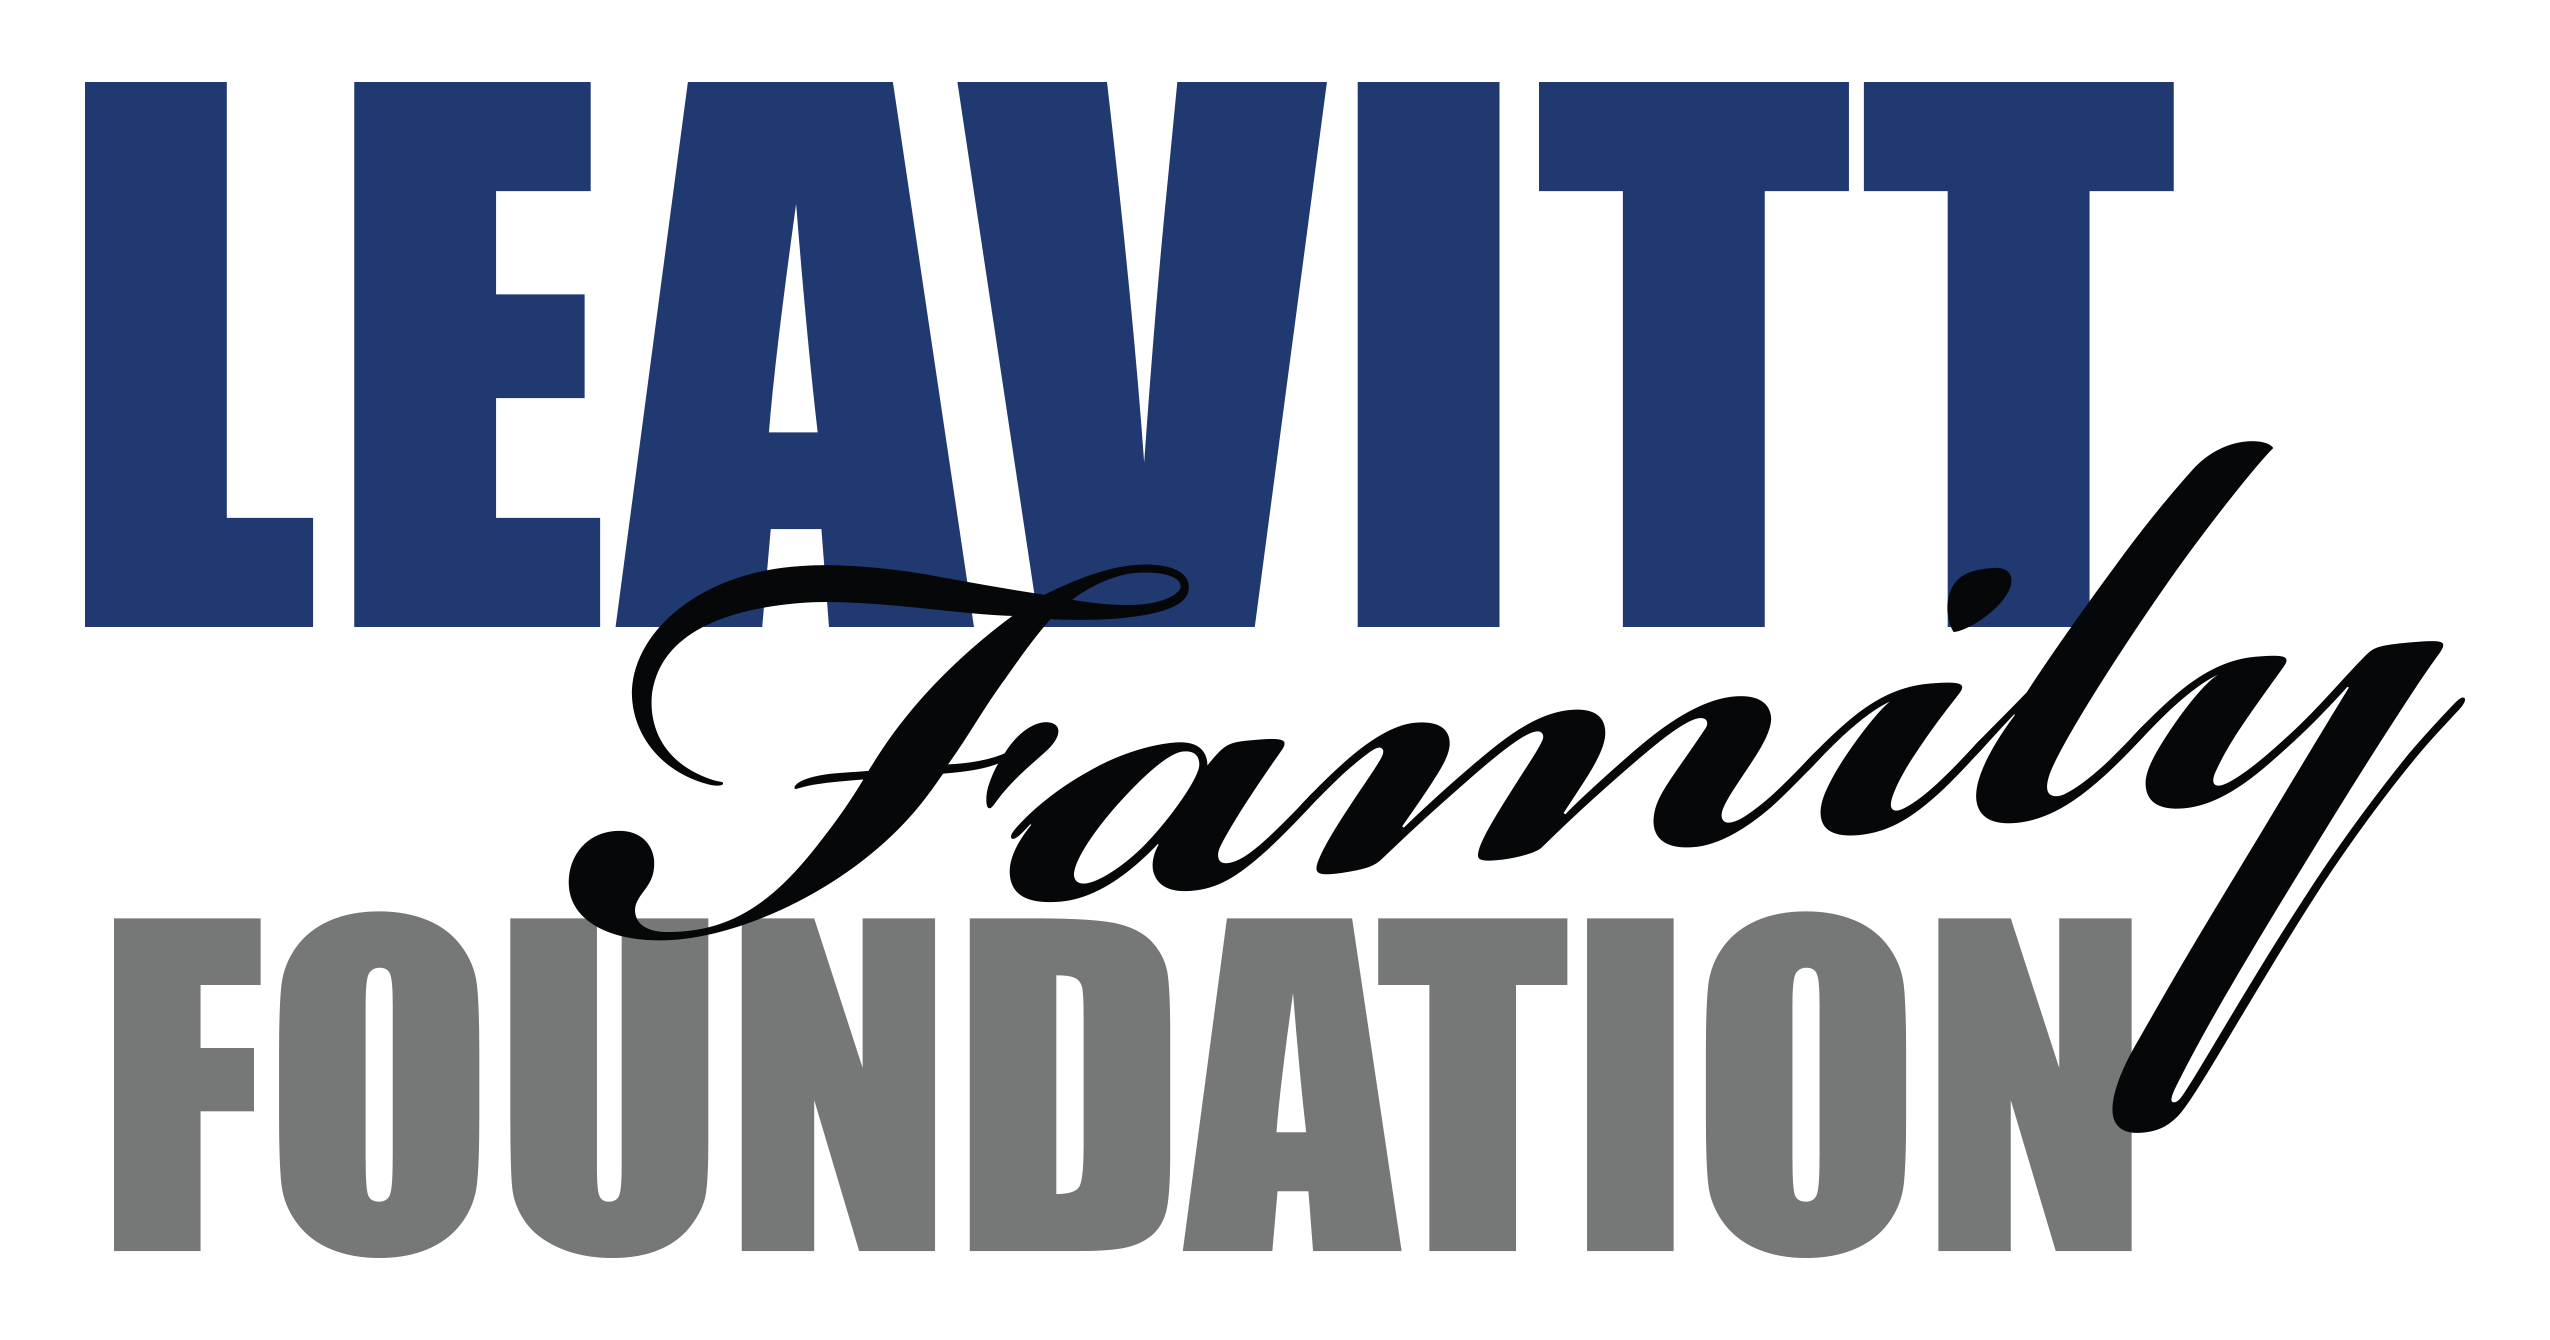 Leavitt Family Foundation